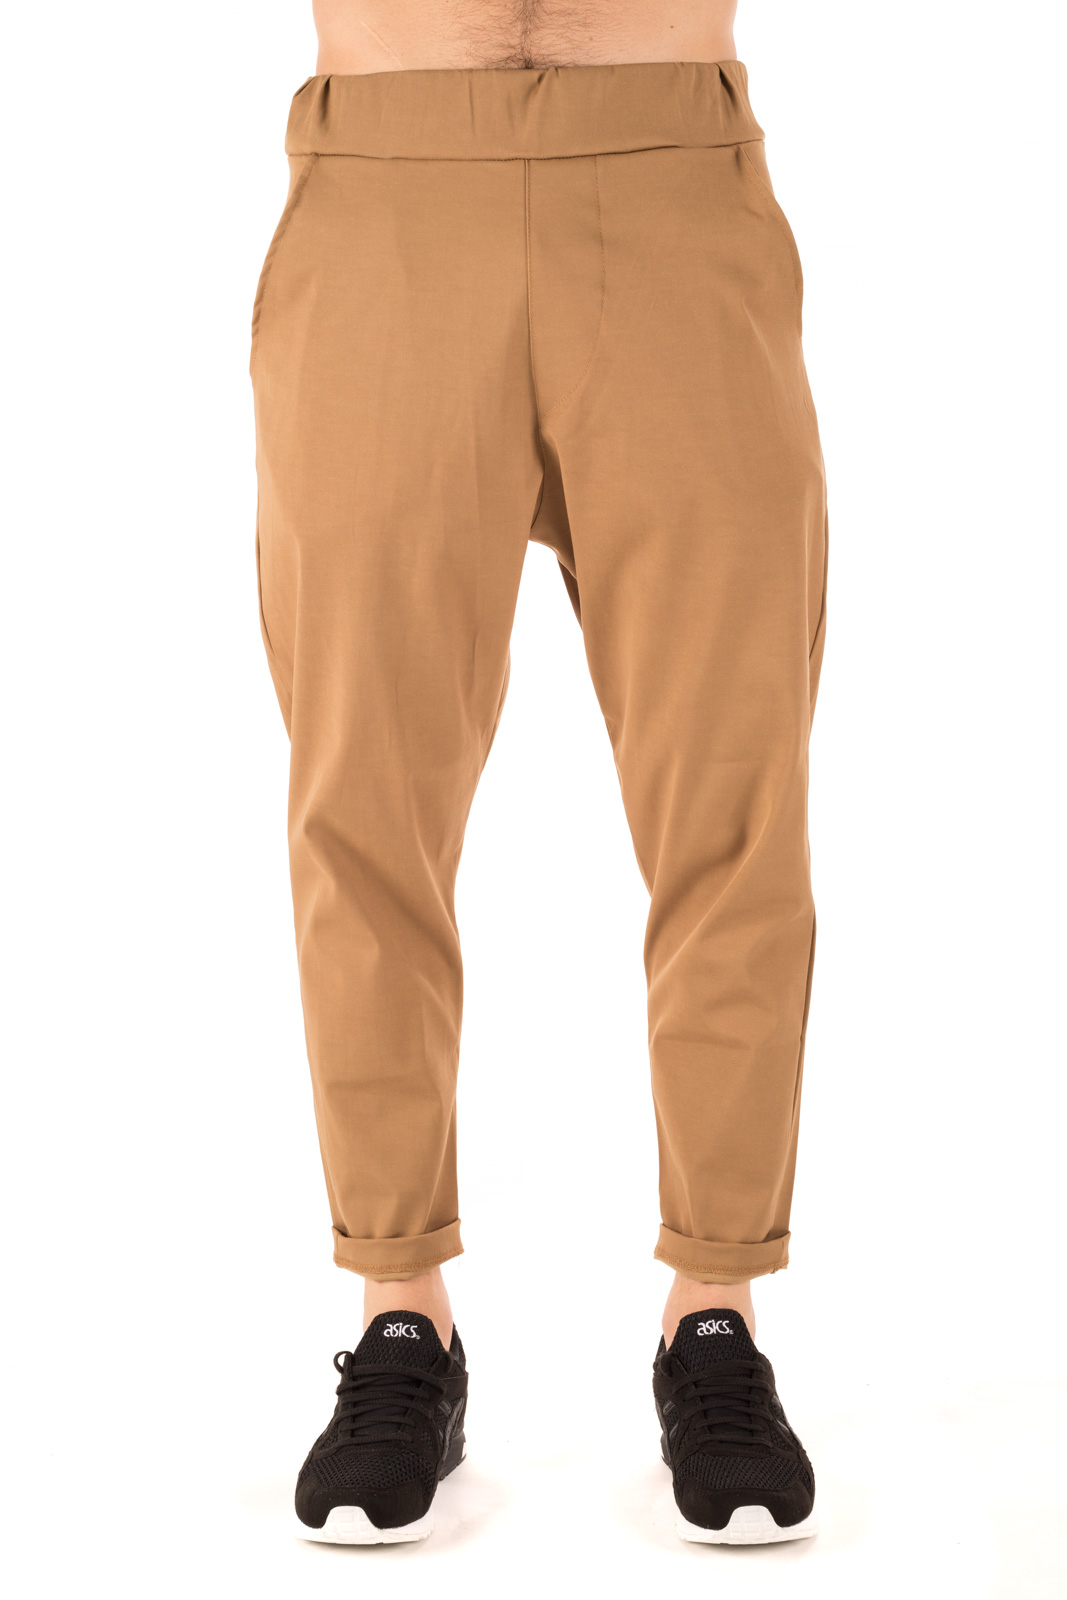 No Perfect - Pantalone baggy con elastico in vita